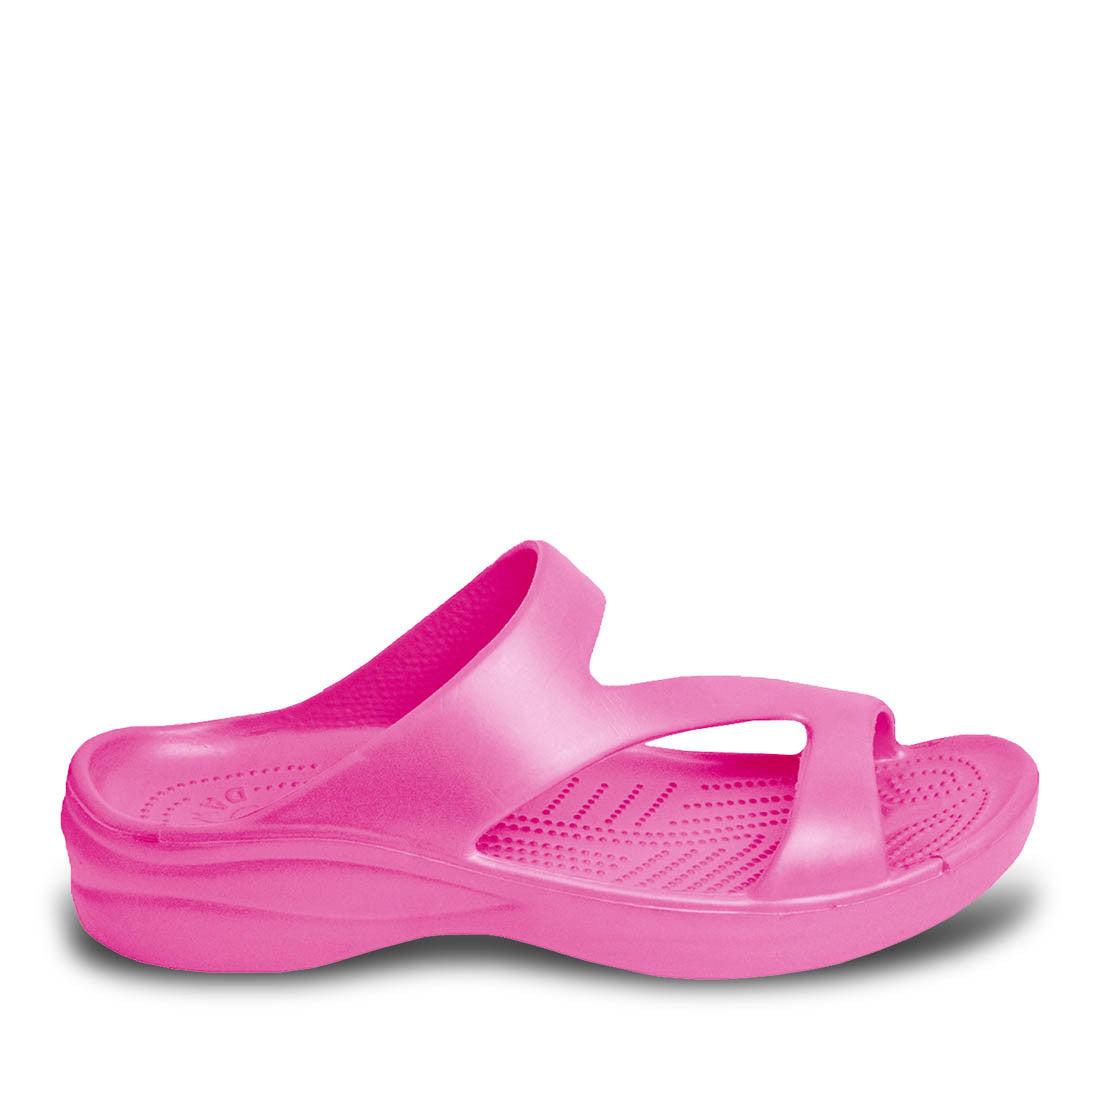 Image of Women's Z Sandals - Hot Pink